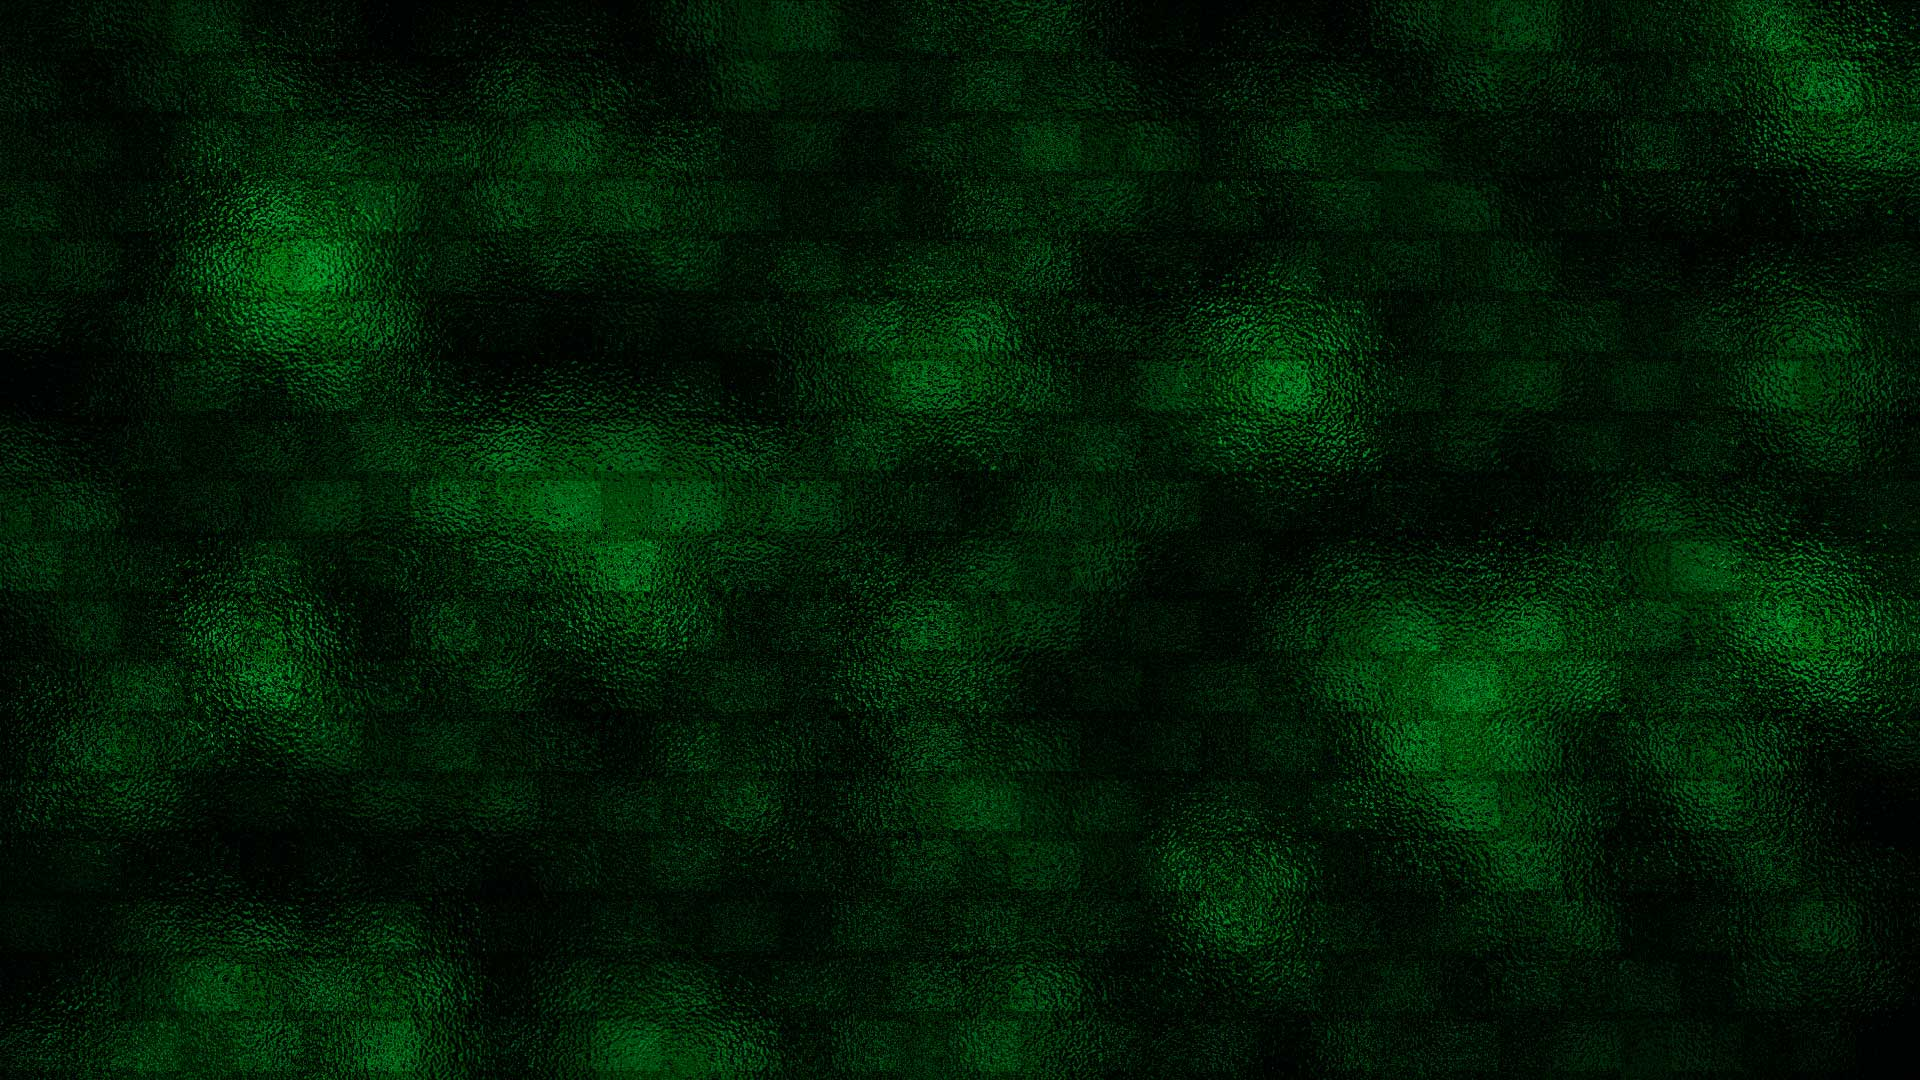 misc pattern background images